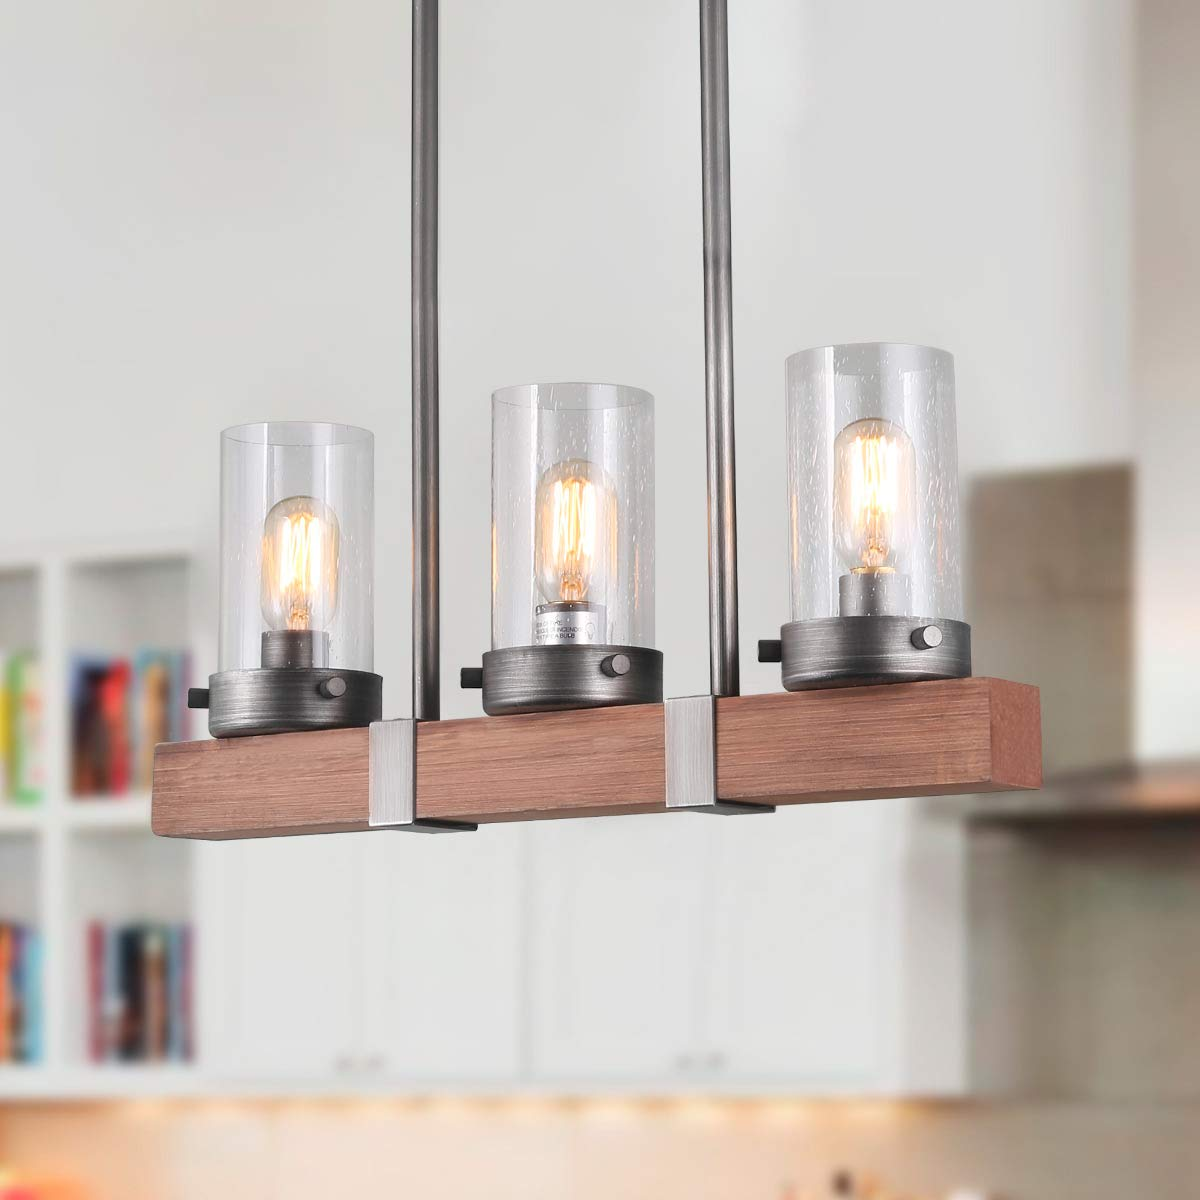 LNC Kitchen Light Fixtures Wood Farmhouse Linear Chandeliers for Dining Rooms, A03346,